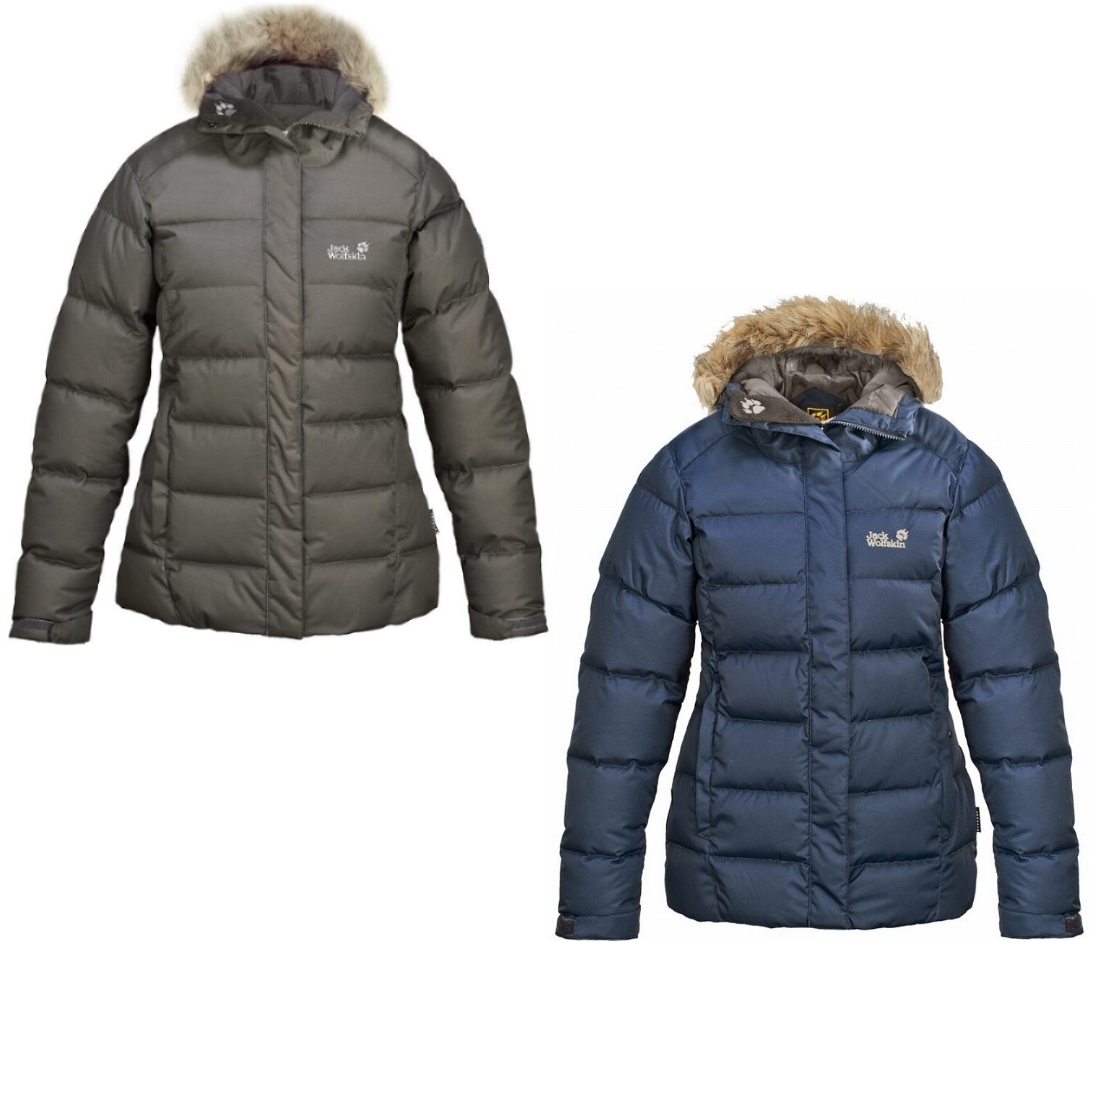 jack wolfskin buffin jacket winterjacke daunenjacke jacke winter damen outdoor ebay. Black Bedroom Furniture Sets. Home Design Ideas